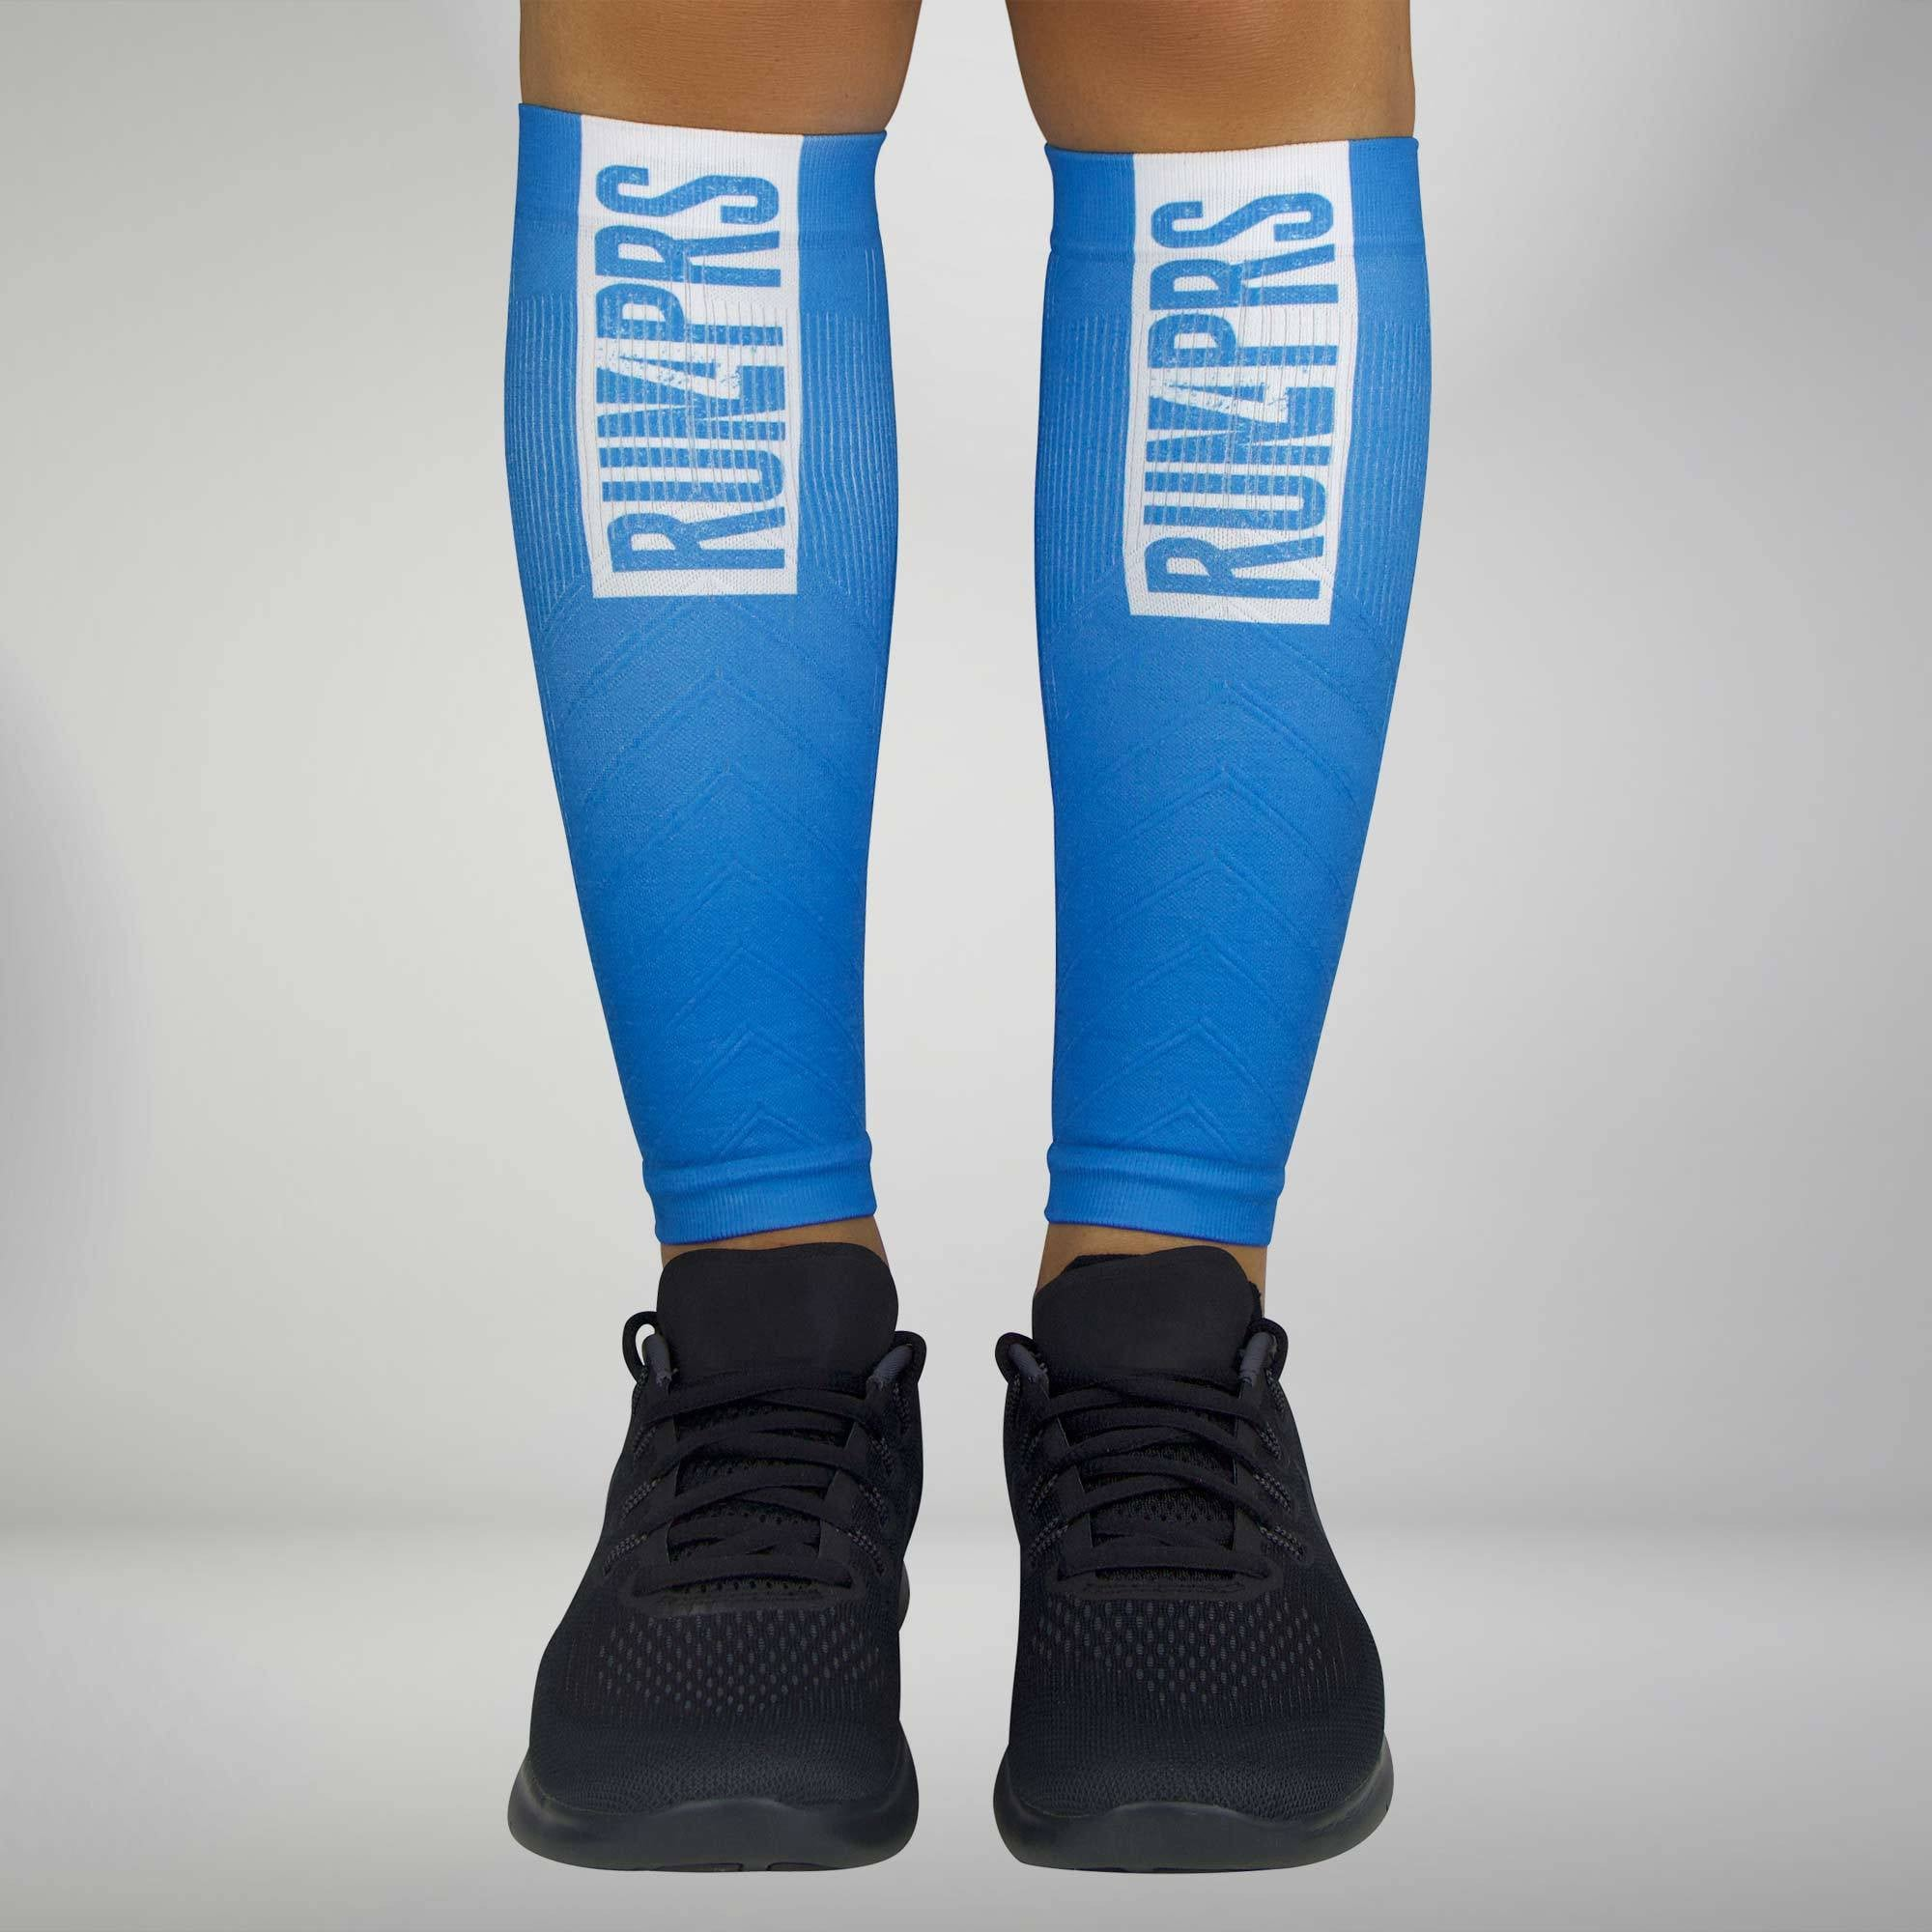 Run4PRs Compression Leg Sleeves